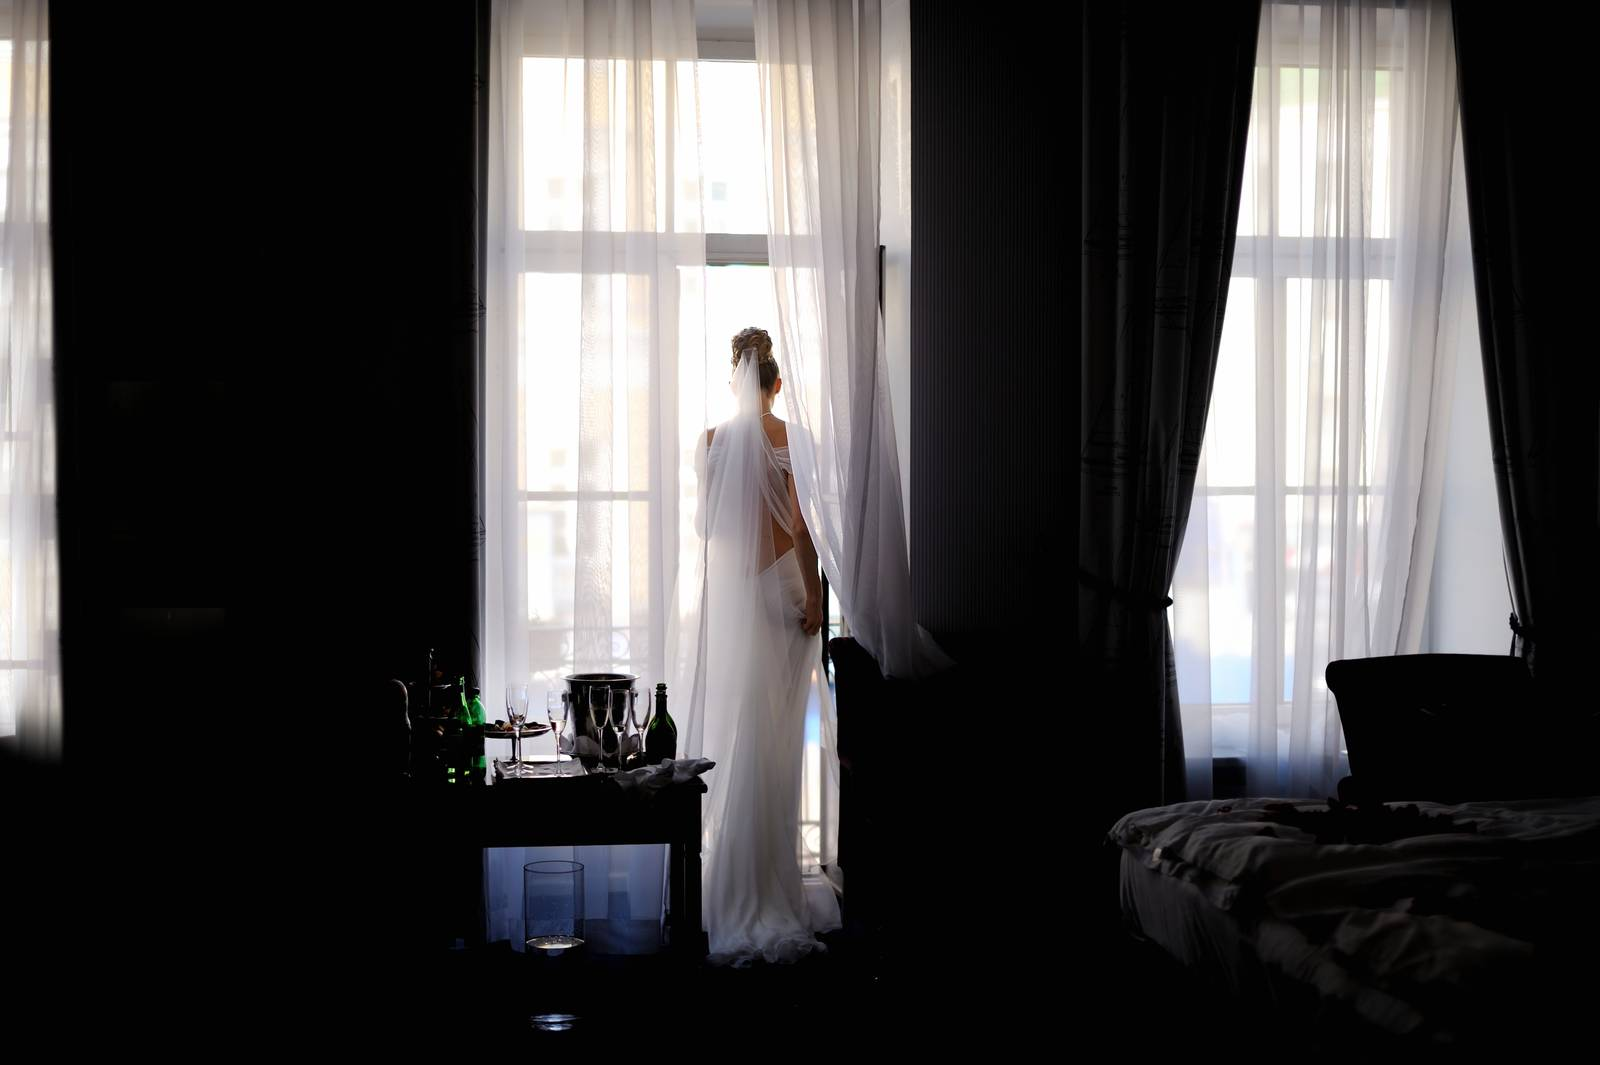 bride, hotel, bridal, room, lamp, gown - D32043506